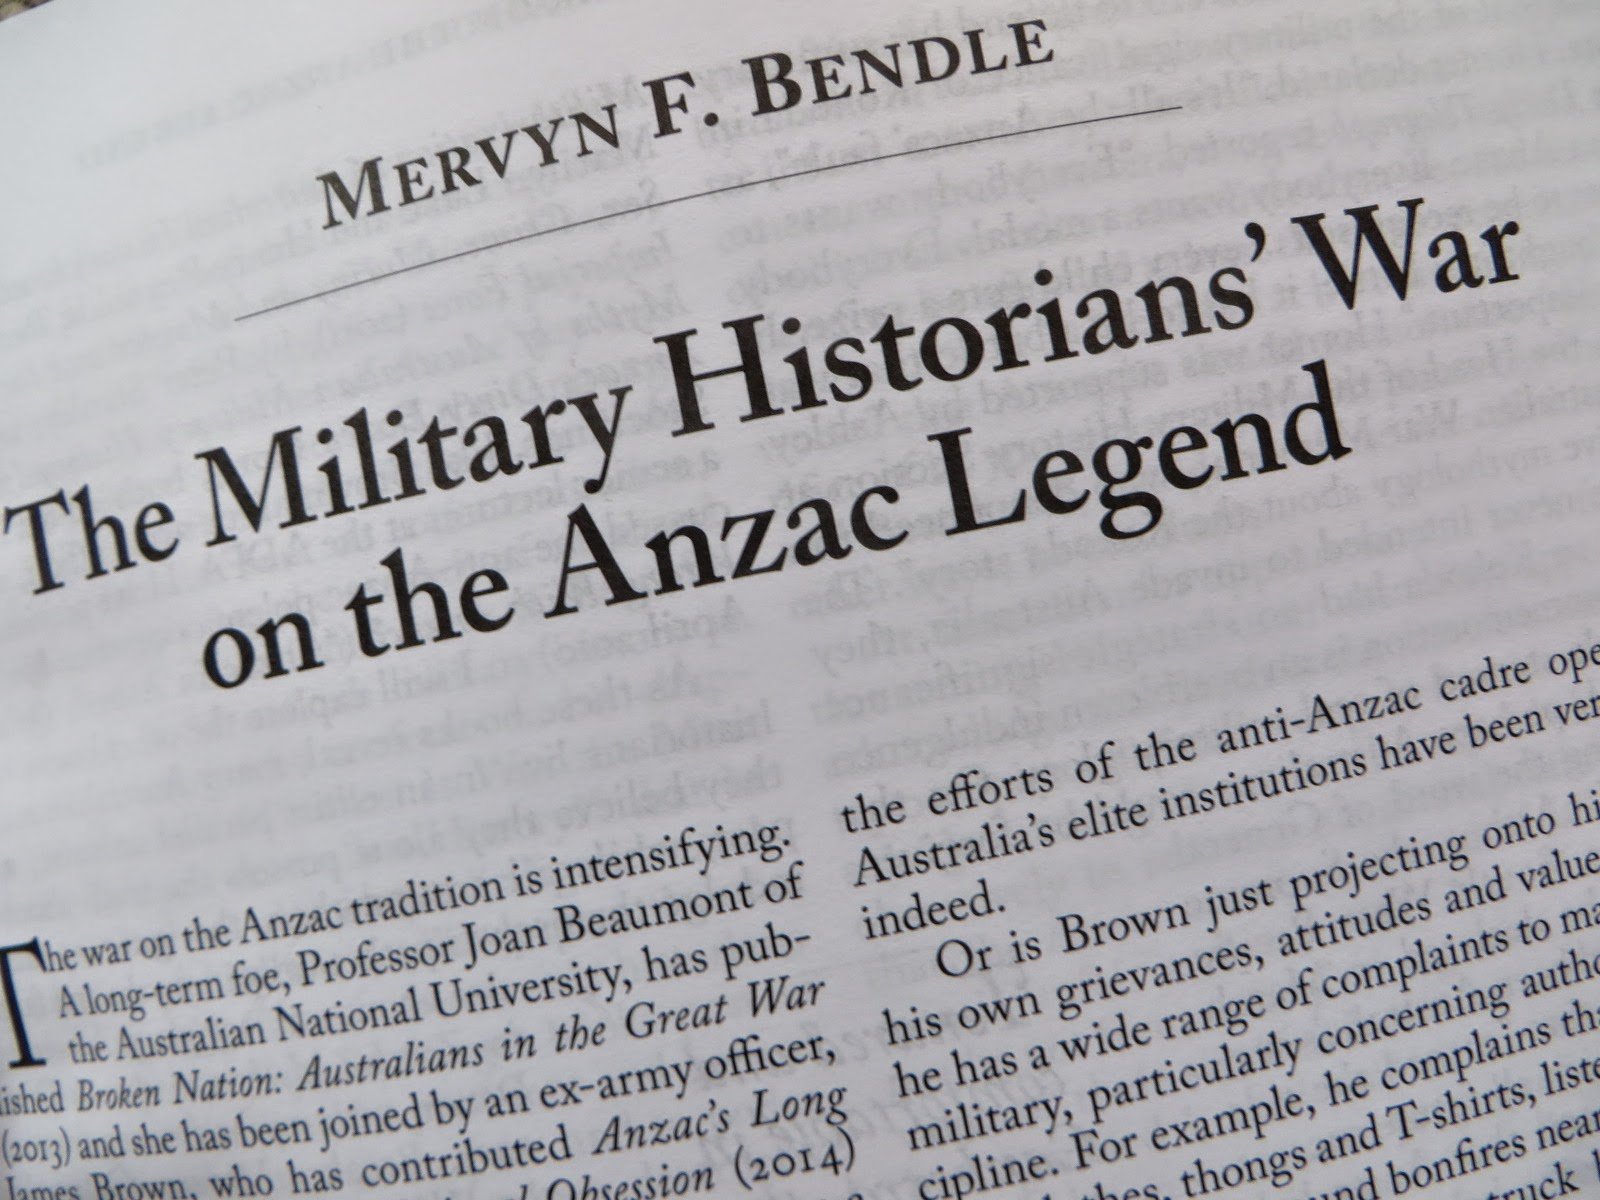 an essay on the anzac tradition The anzac tradition: honest history the anzac tradition: honest while the anzac 'legend' is important in australian history published by newsouth in time for anzac day 2017, is a collection of essays on the diverse themes that honest history members and their website.